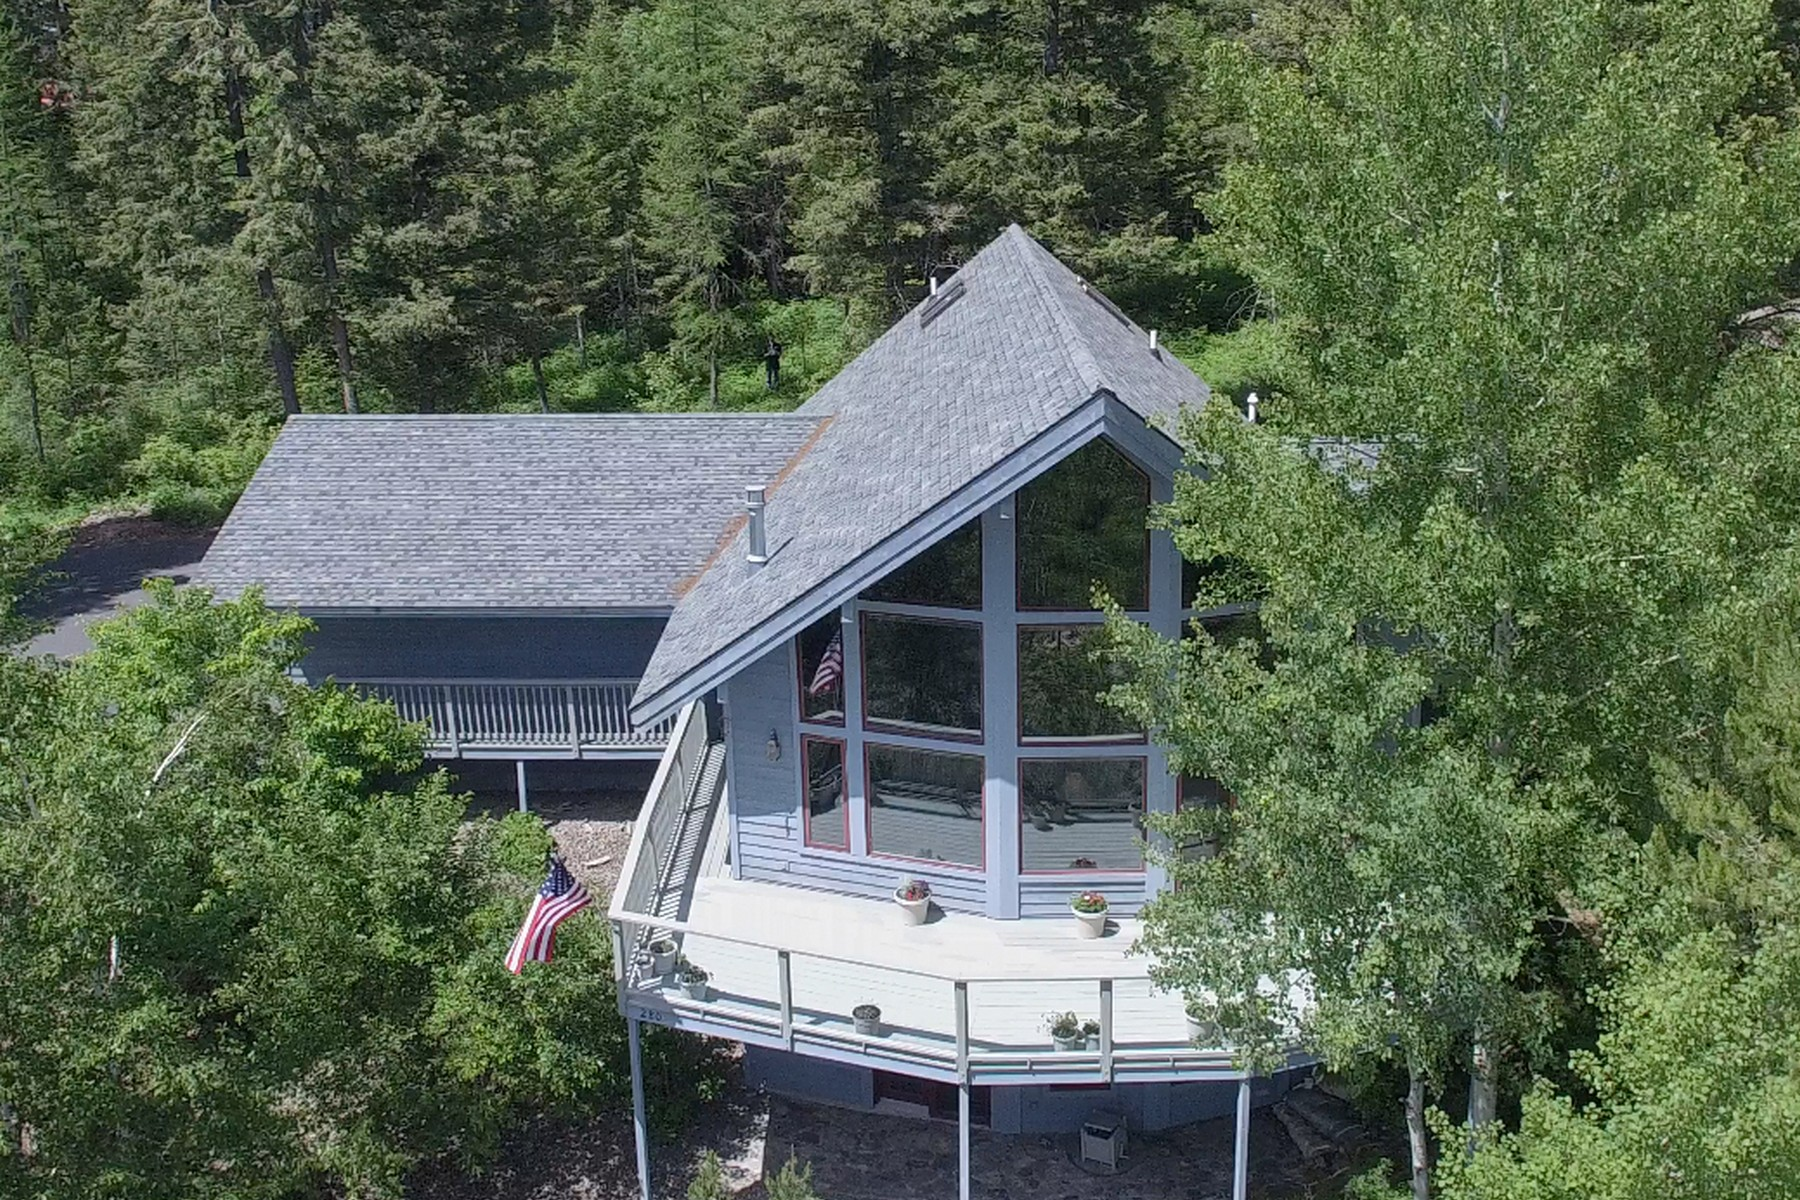 Single Family Home for Sale at 280 Meadow Lake Drive 280 Meadow Lake Dr Columbia Falls, Montana 59912 United States